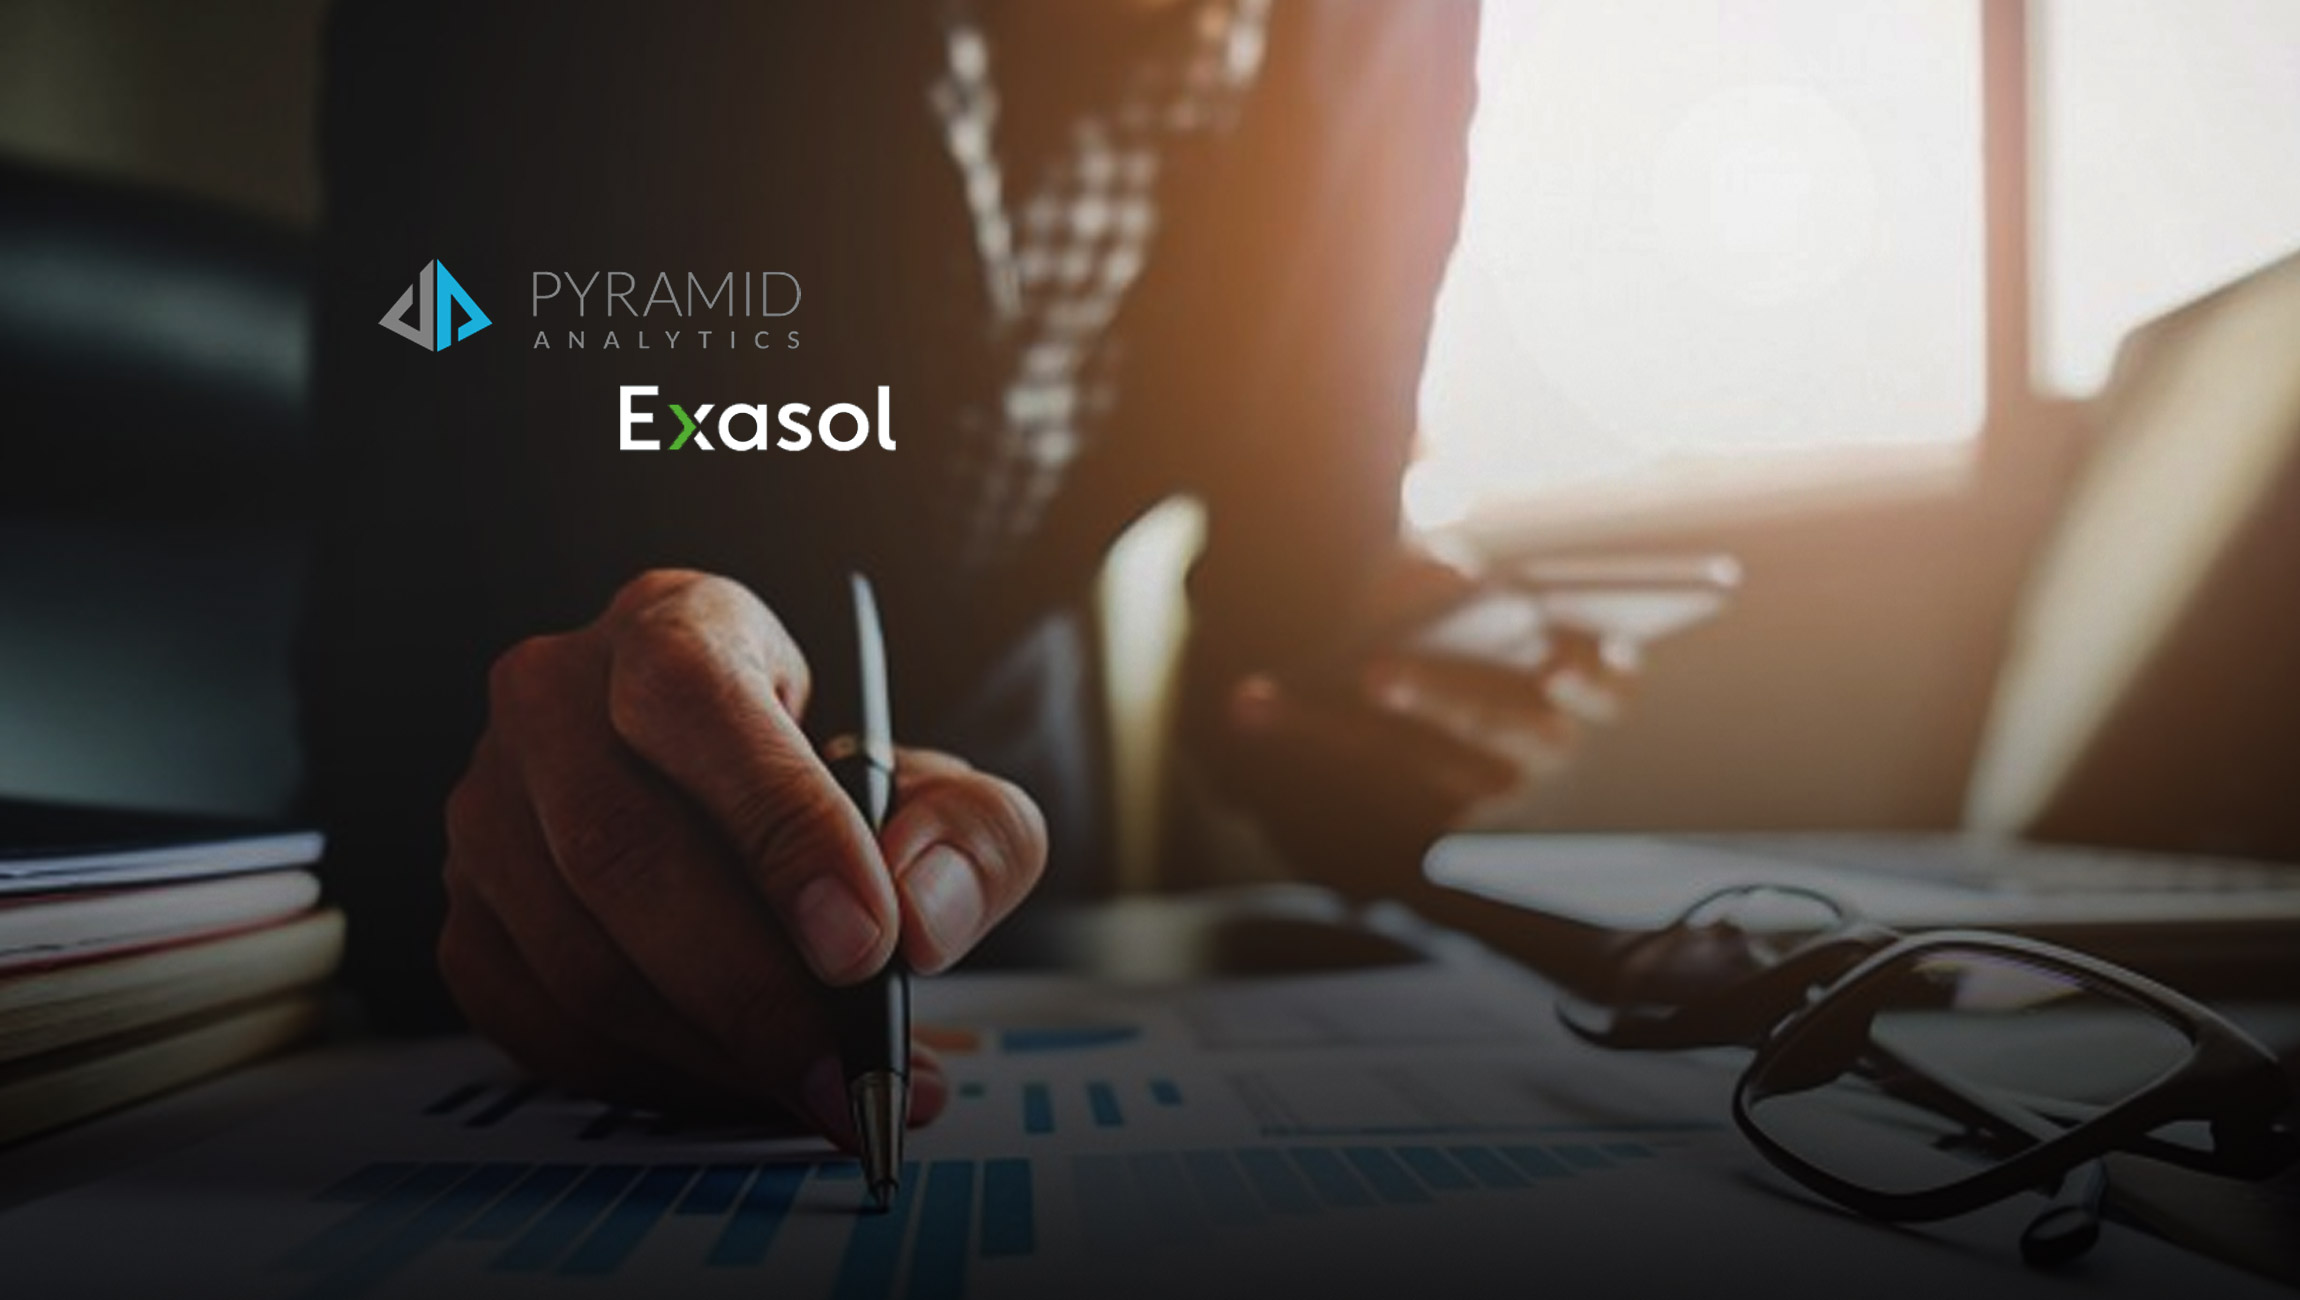 Exasol and Pyramid Analytics Join Forces to Put the End-User Experience Front and Center